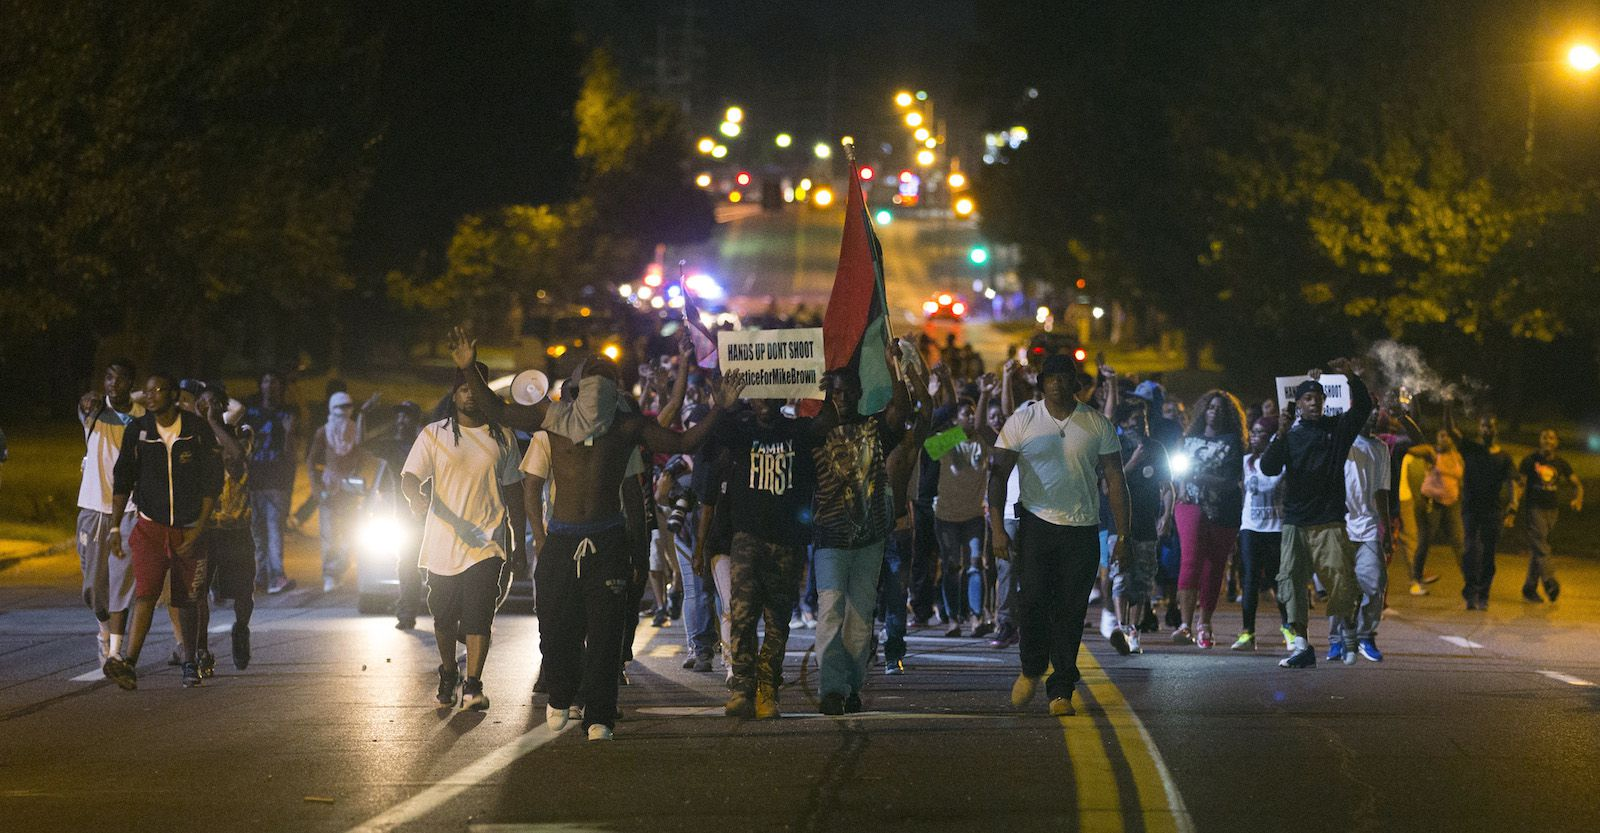 Demonstrators march in the street while protesting the shooting death of black teenager Michael Brown in Ferguson, Missouri August 12, 2014. Police said Brown, 18, was shot in a struggle with a gun in a police car but have not said why Brown was in the car. At least one shot was fired during the struggle and then the officer fired more shots before leaving the car, police said. But a witness to the shooting interviewed on local media has said that Brown had been putting his hands up to surrender when he was killed. The FBI has opened a civil rights investigation into the racially charged case and St. Louis County also is investigating.  REUTERS/Mario Anzuoni  (UNITED STATES - Tags: CRIME LAW TPX IMAGES OF THE DAY) - RTR42841